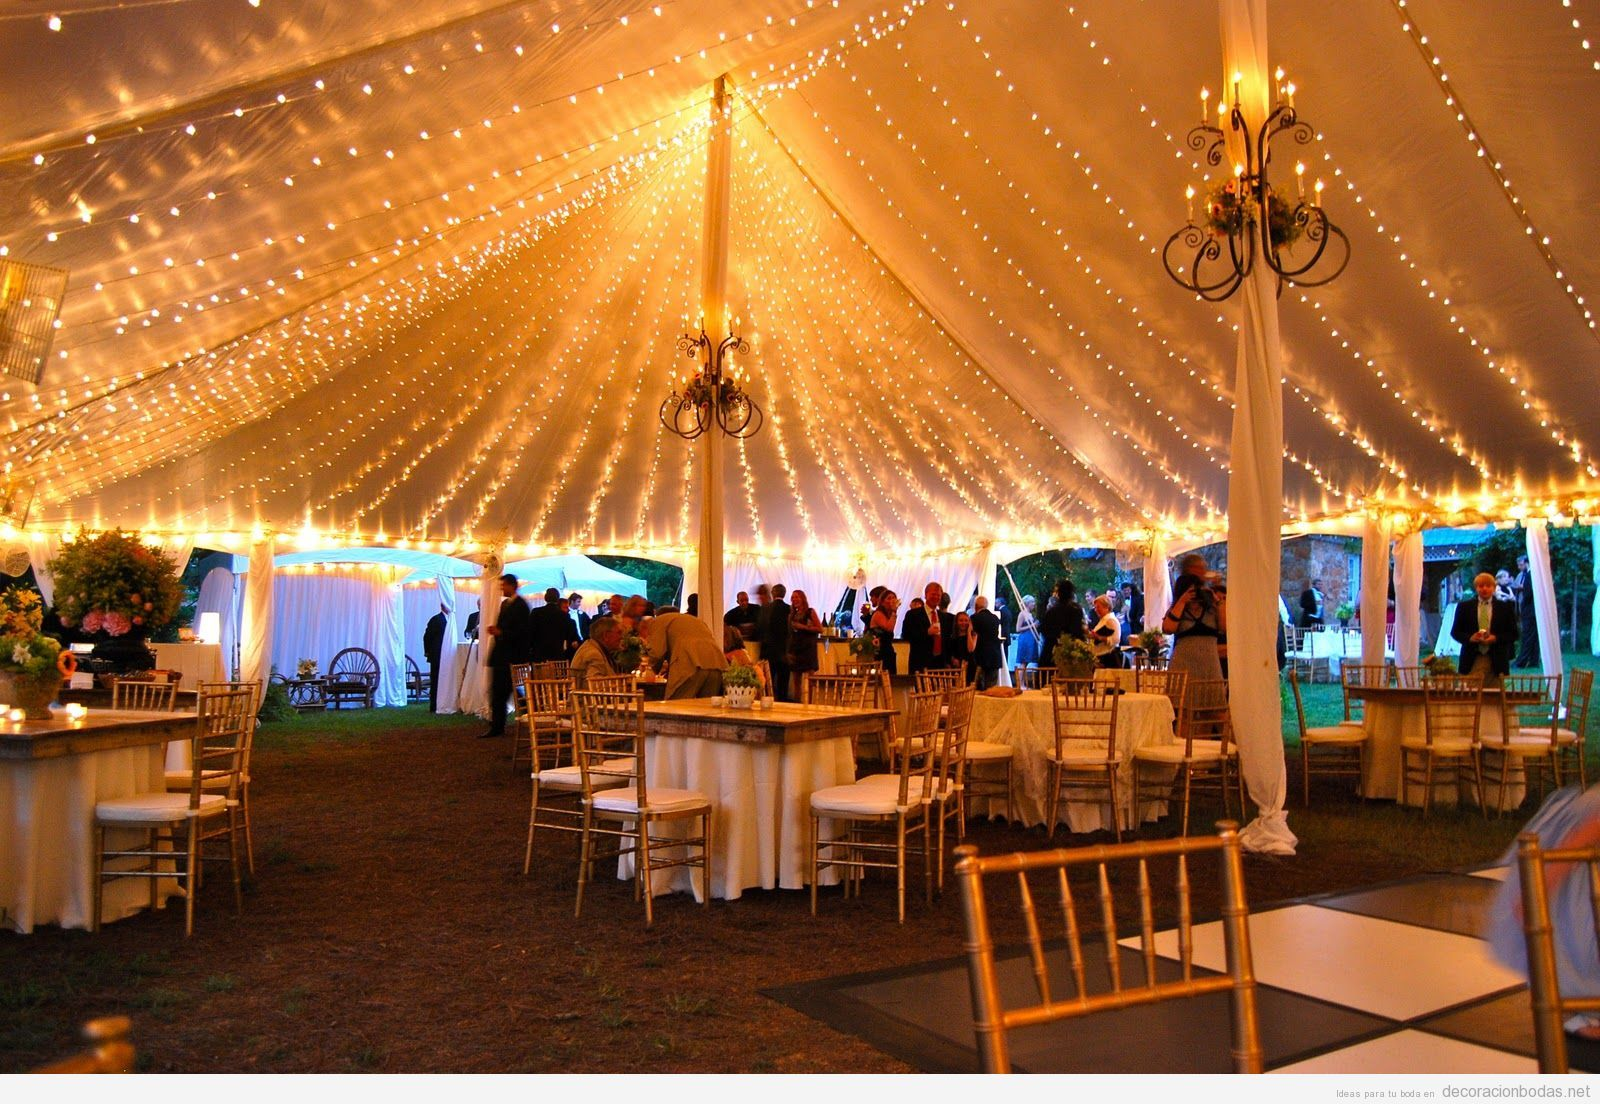 Decoraci n de boda carpa con luces novias 2 pinterest - Decoracion con luces ...